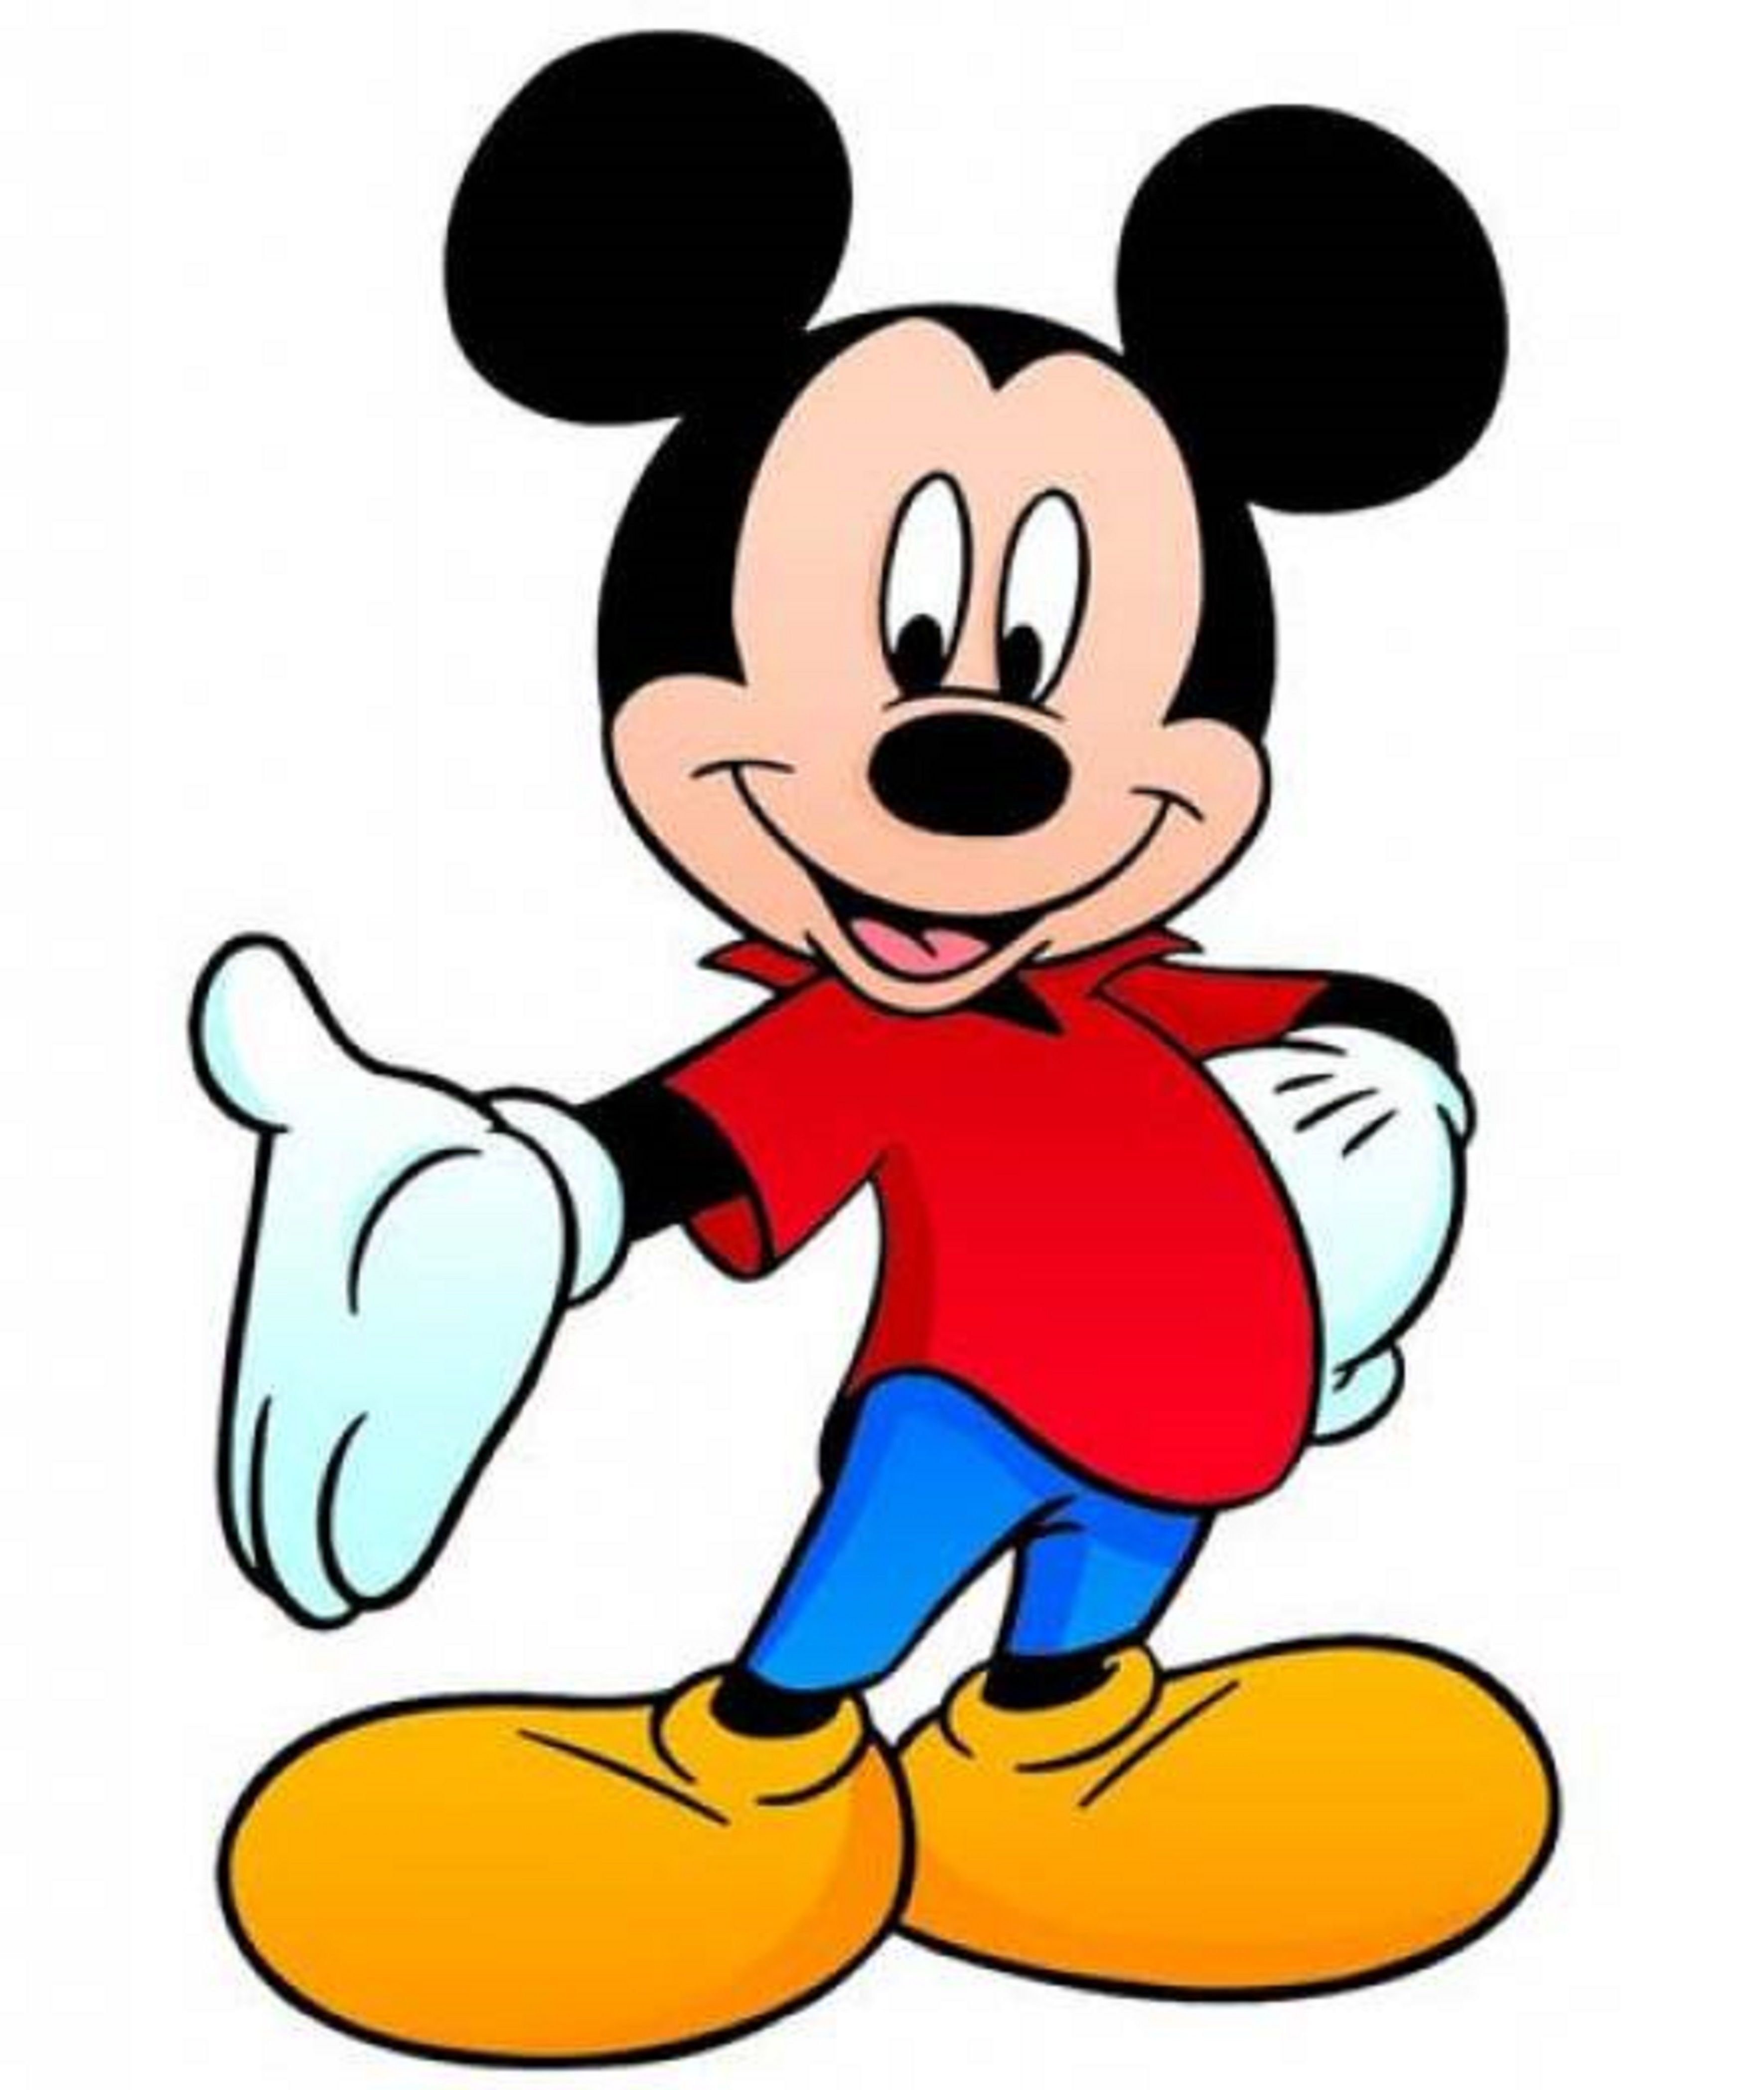 Mickey clipart micky. Mouse redbubble in cartoon